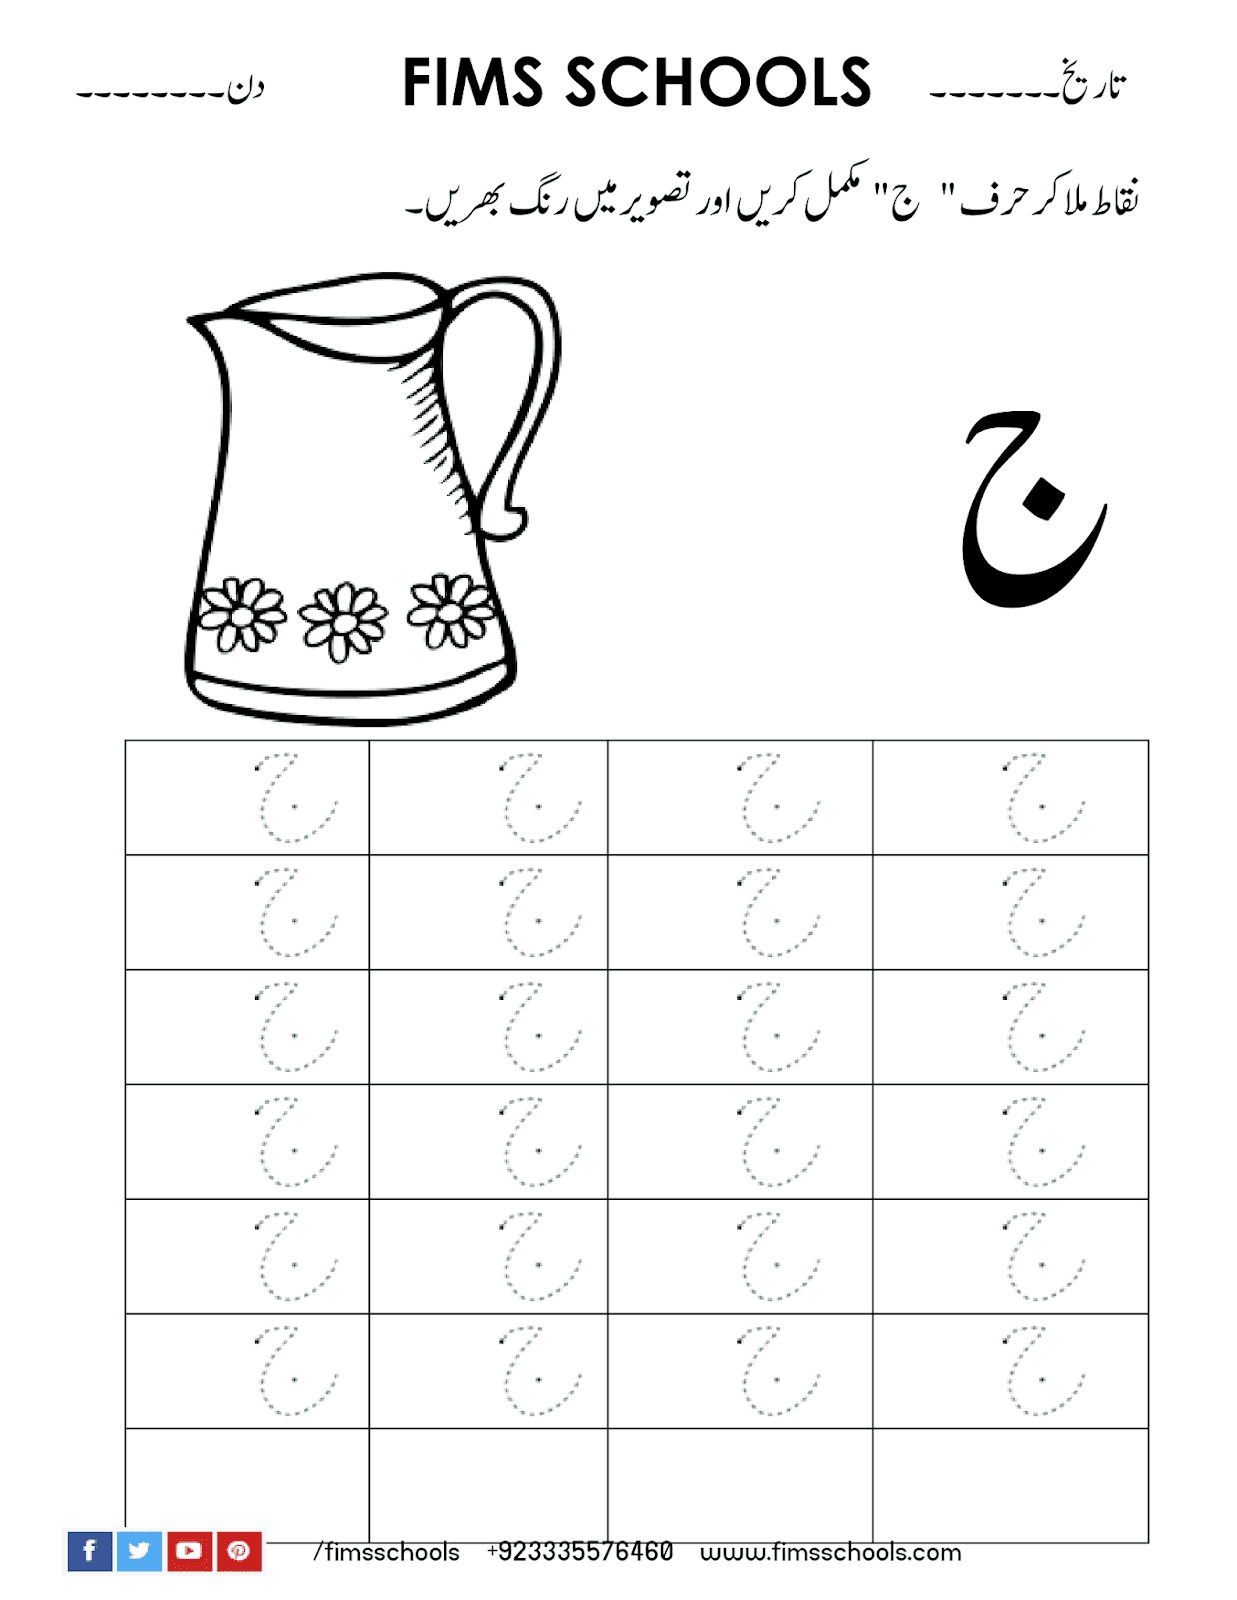 Jeem (ج) Urdu Tracing Worksheet - Free Printable And Free